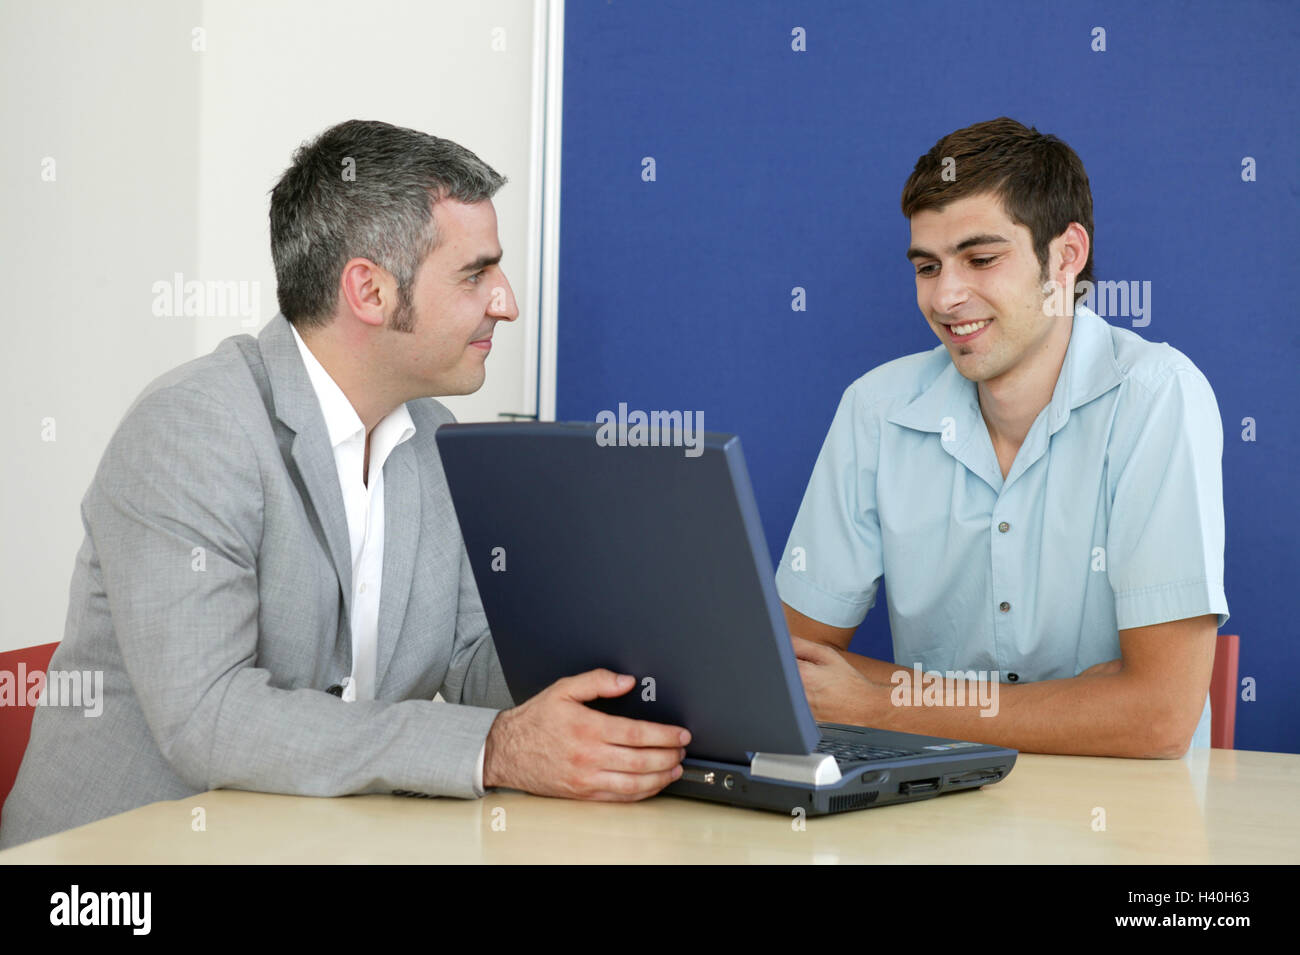 Businessman, notebook computer, man, young, consultation, smile, present business, conference room, man, manager, - Stock Image